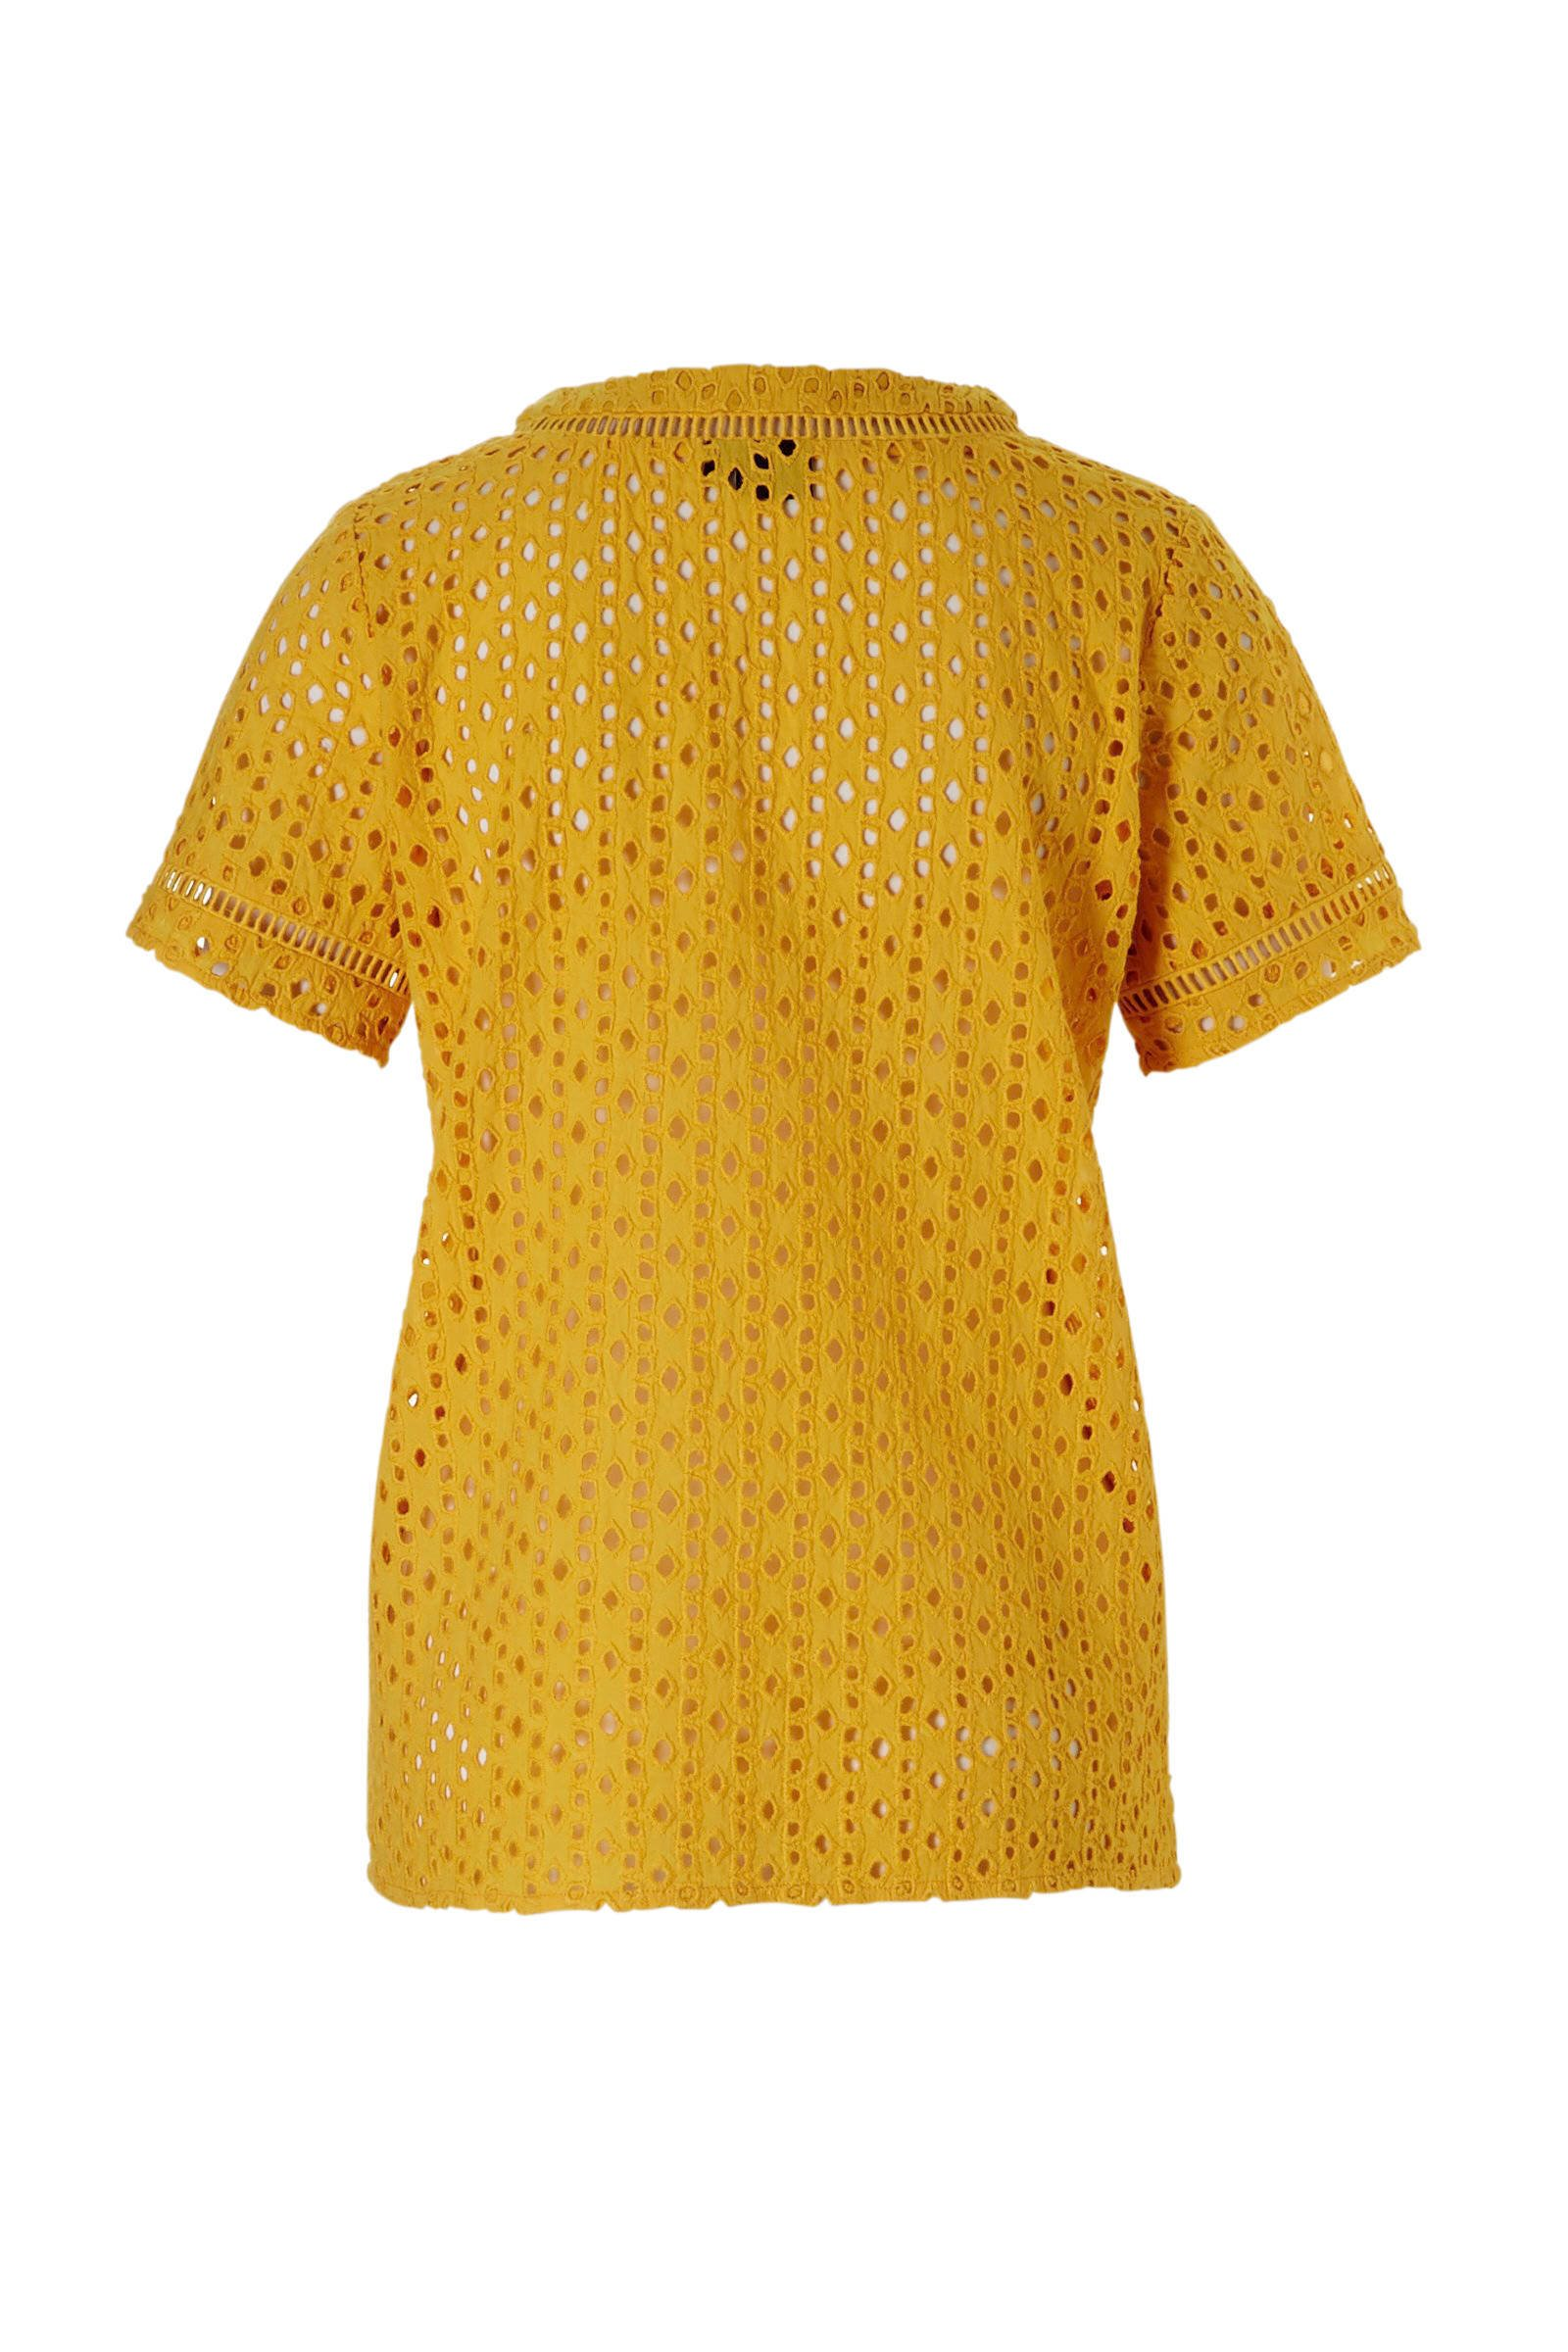 344ad8280f300c whkmp s own top met broderie anglaise